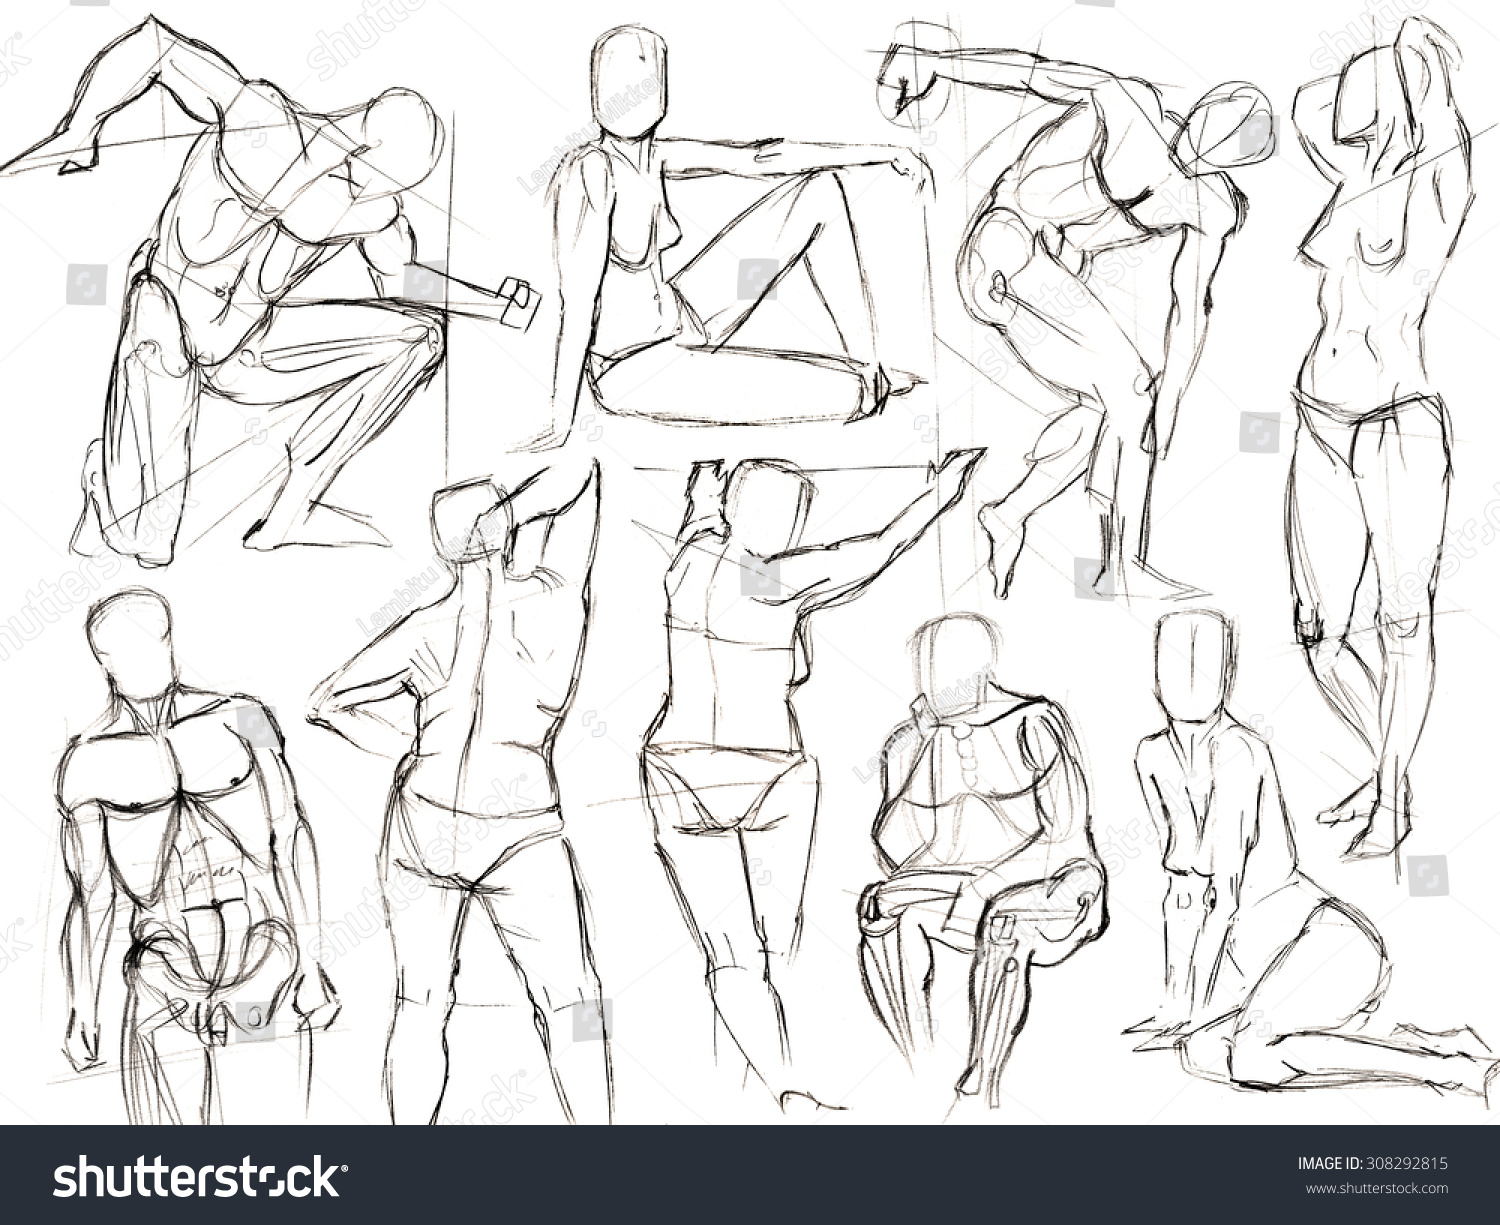 Classic black and white pencil drawing of human figures sketch